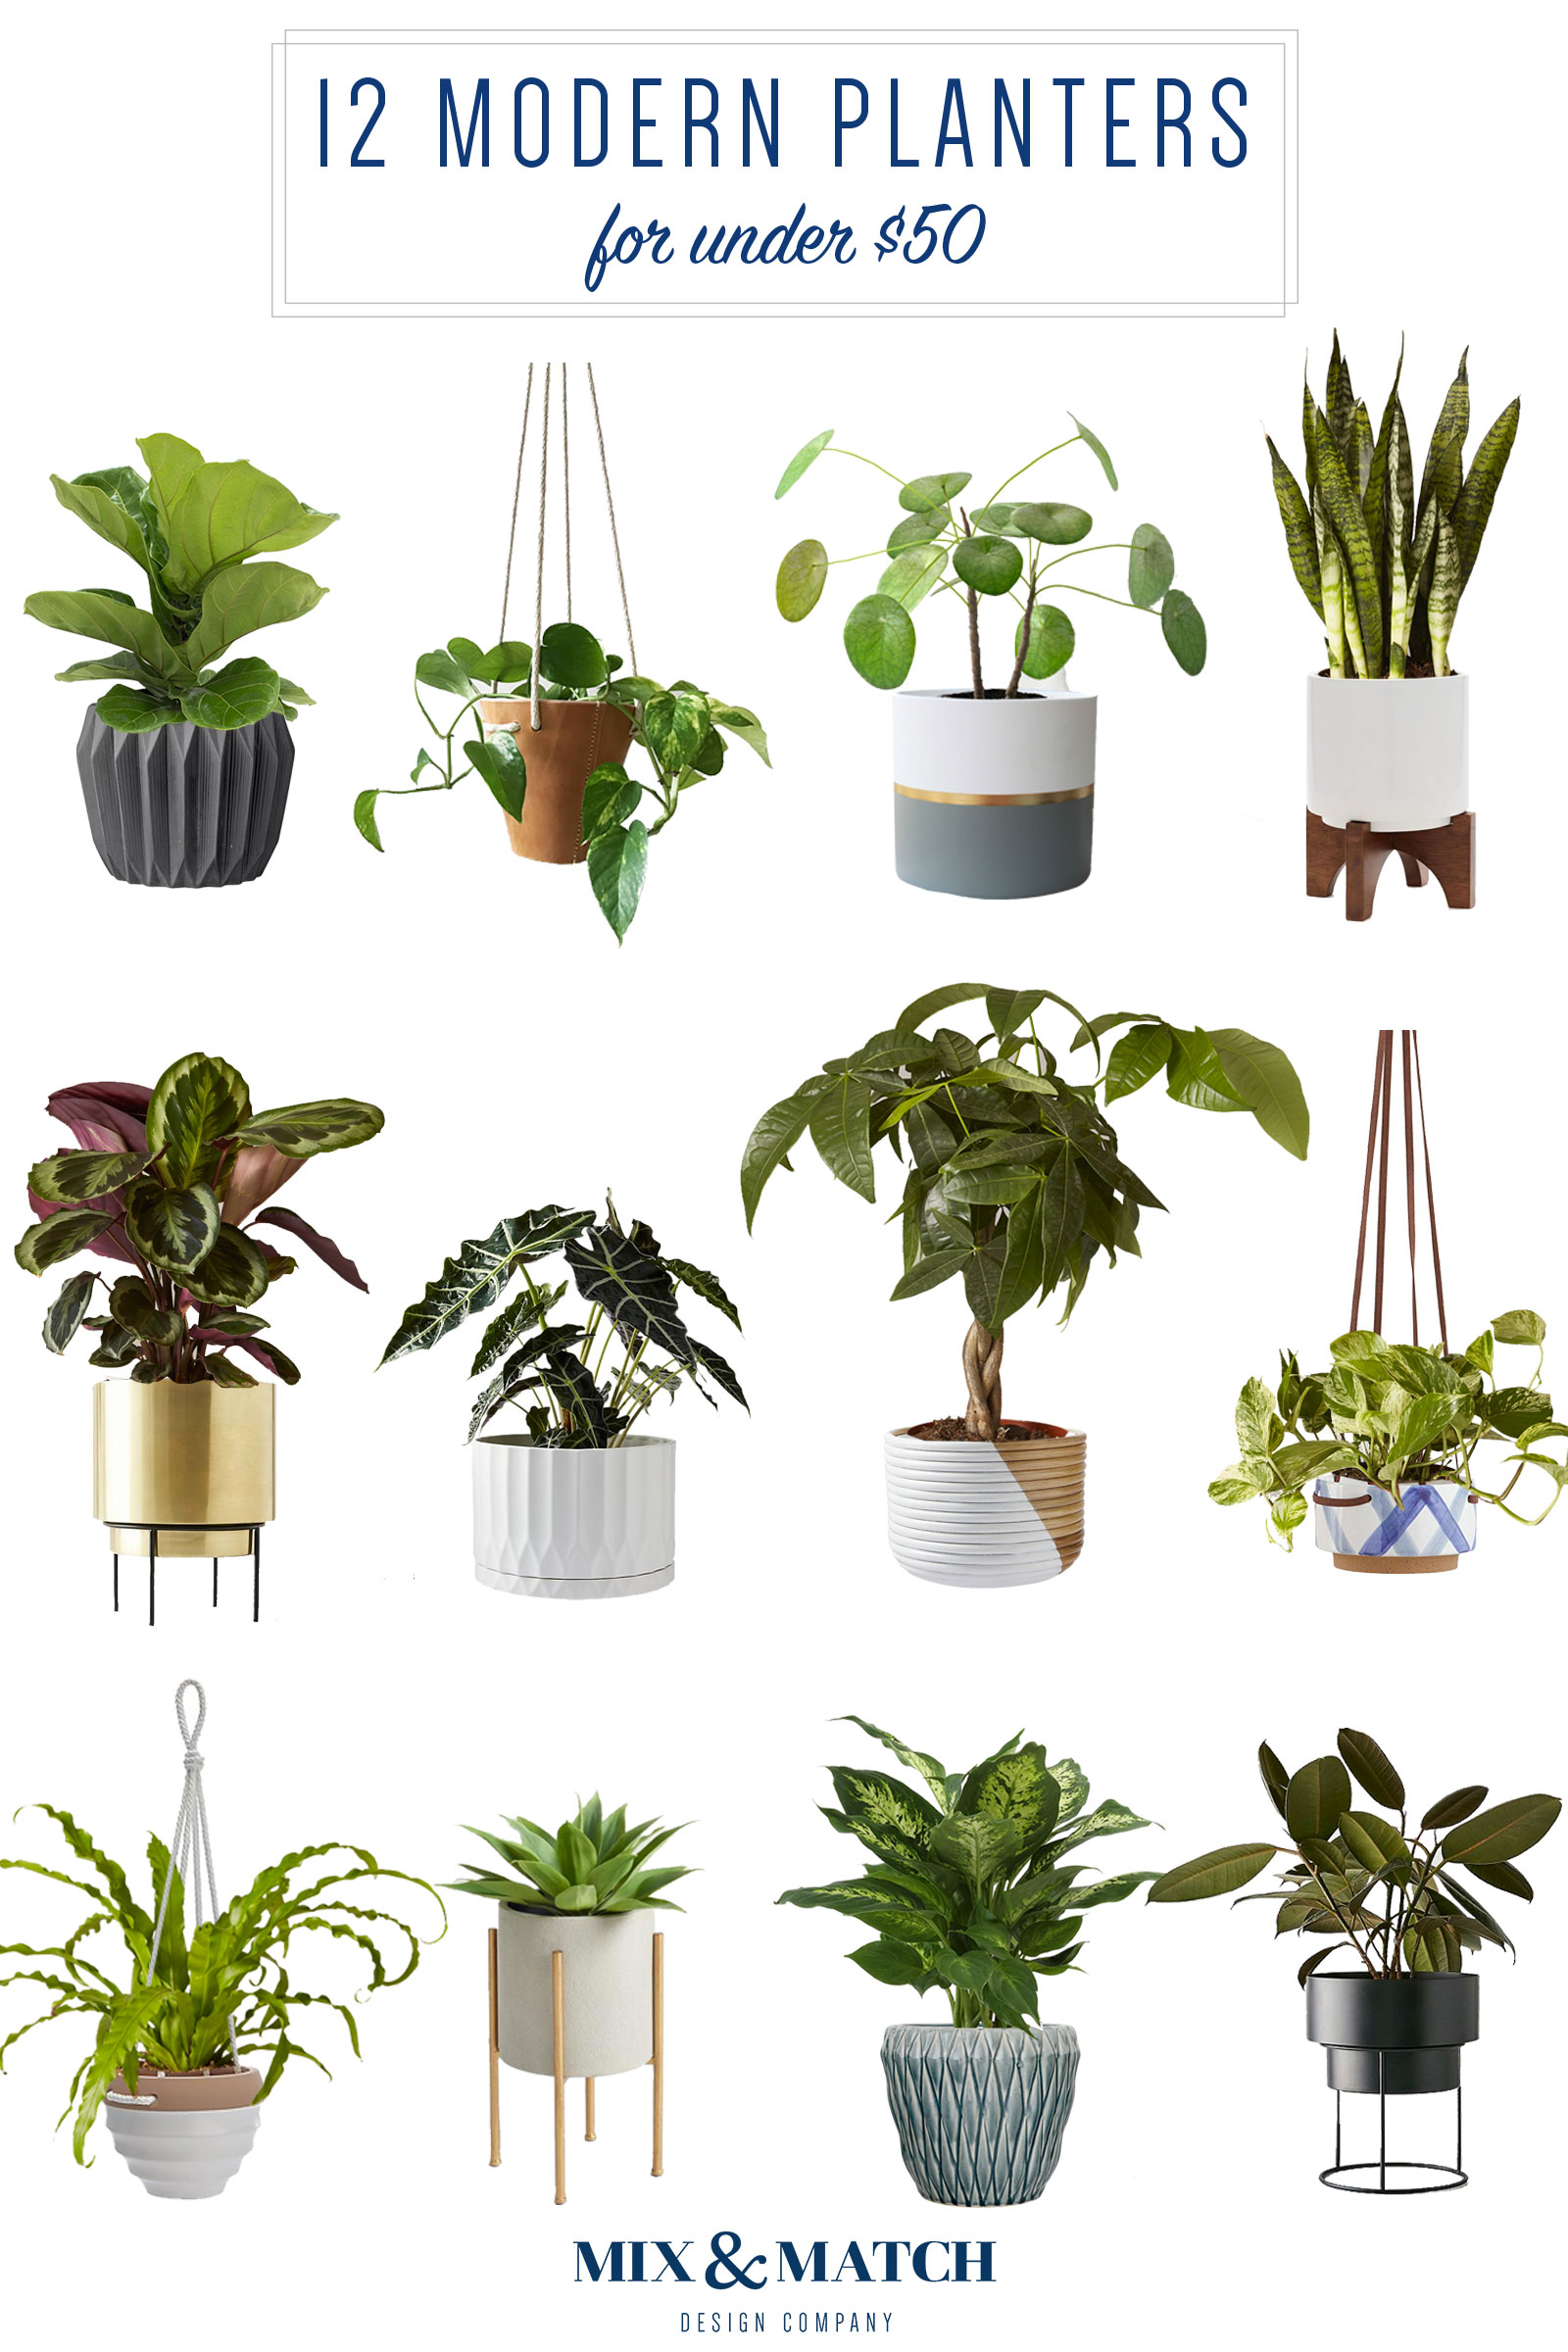 Are you shopping for a modern planter? I've got a roundup of twelve affordable planters on stands, hanging planters, and tabletop planters over on the blog along with tips on how to find the right one for your plant!